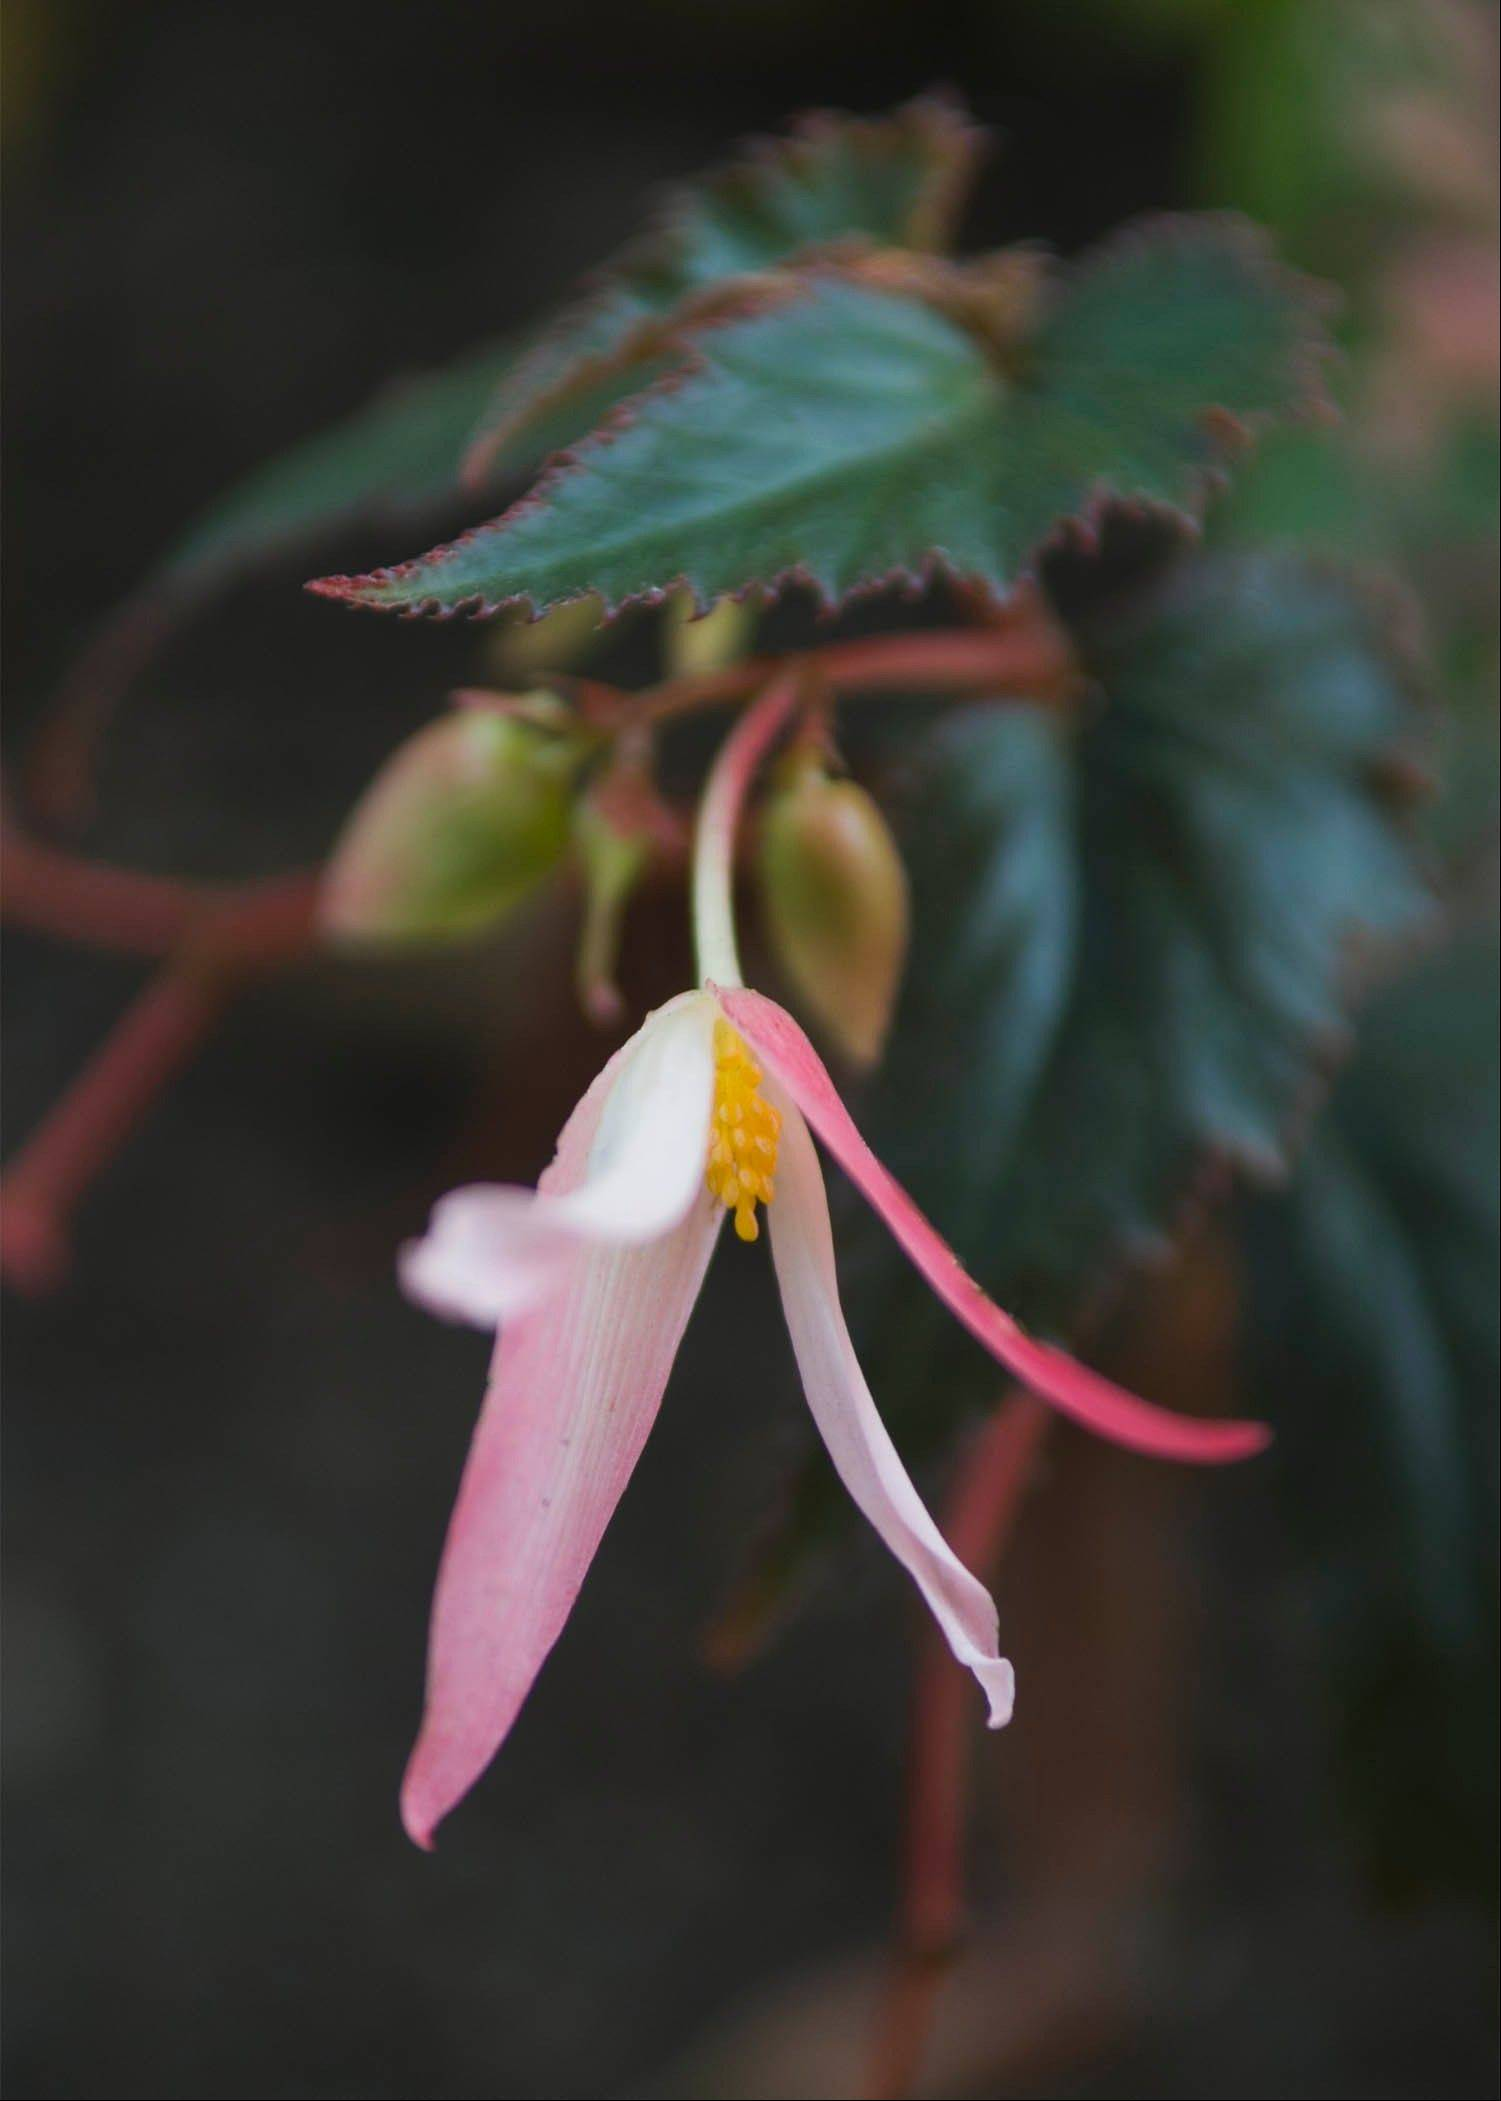 Begonias, like this Bonfire Chocolate variety, can be overwintered by taking cuttings now.